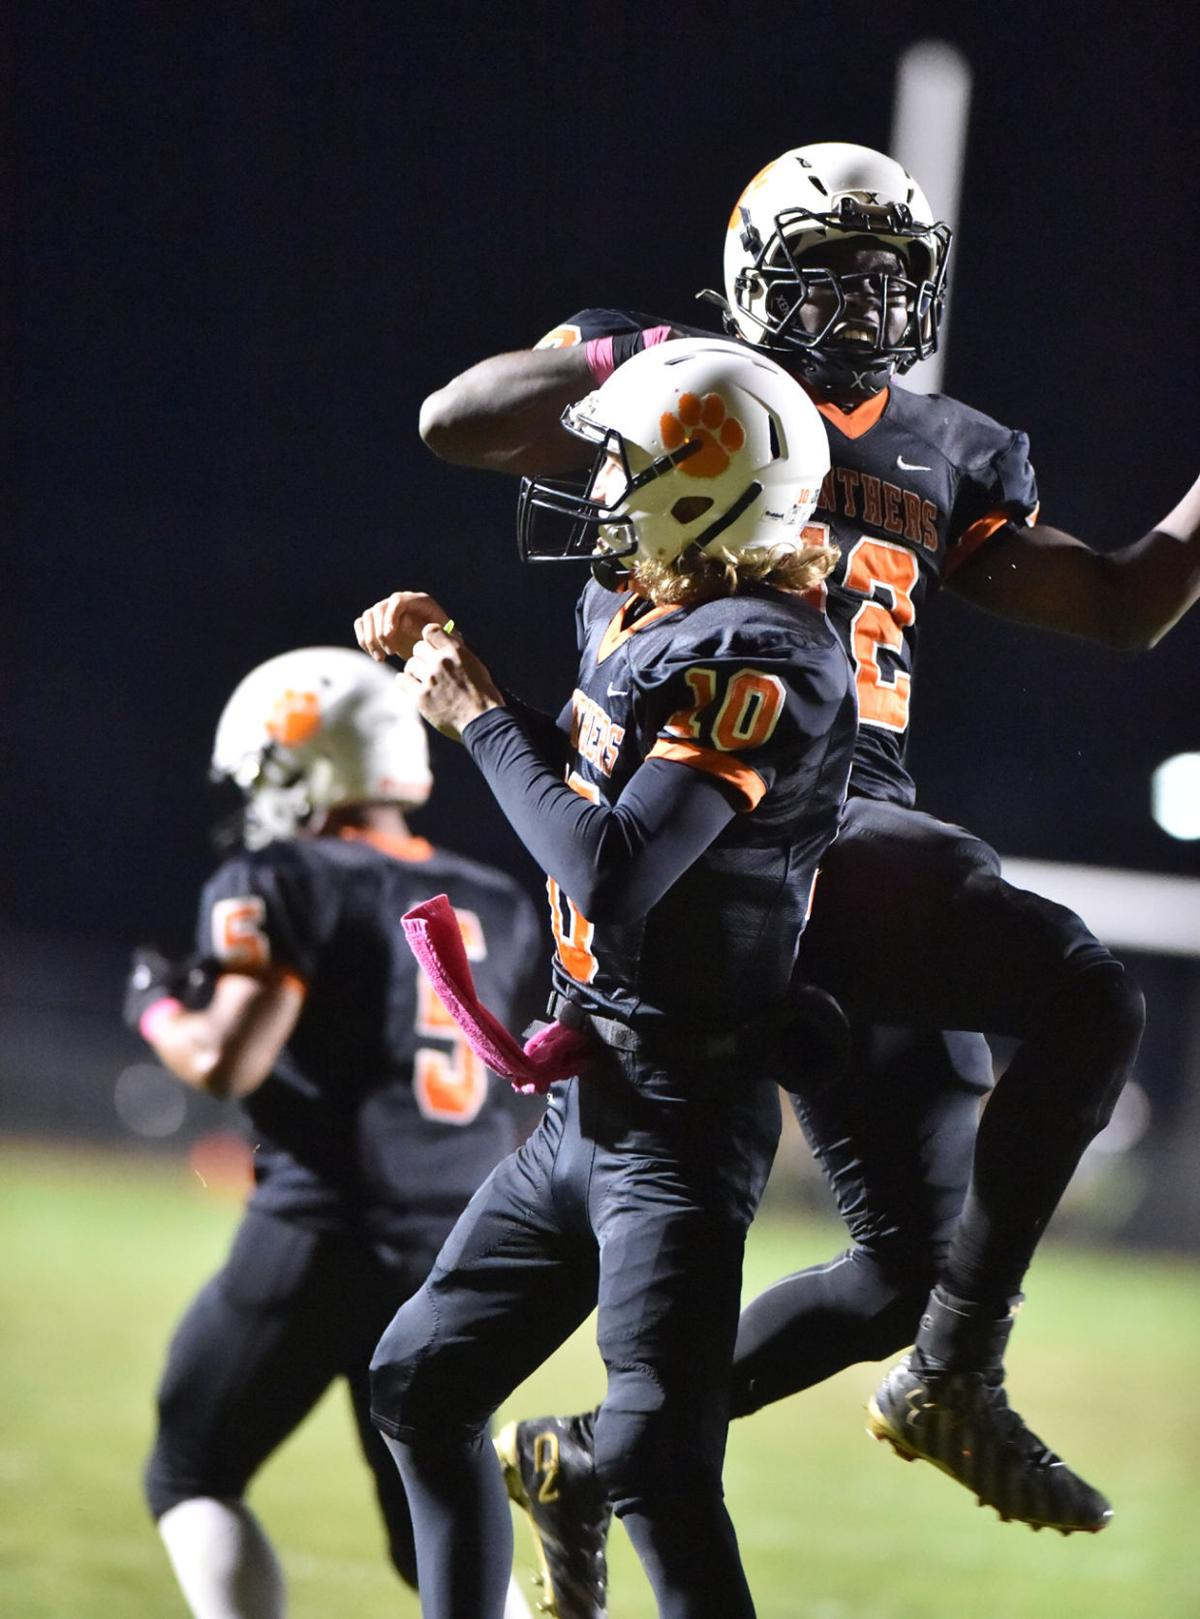 Week 12 Game of the Week: East Pennsboro's Onasis Neely, Payton Morris